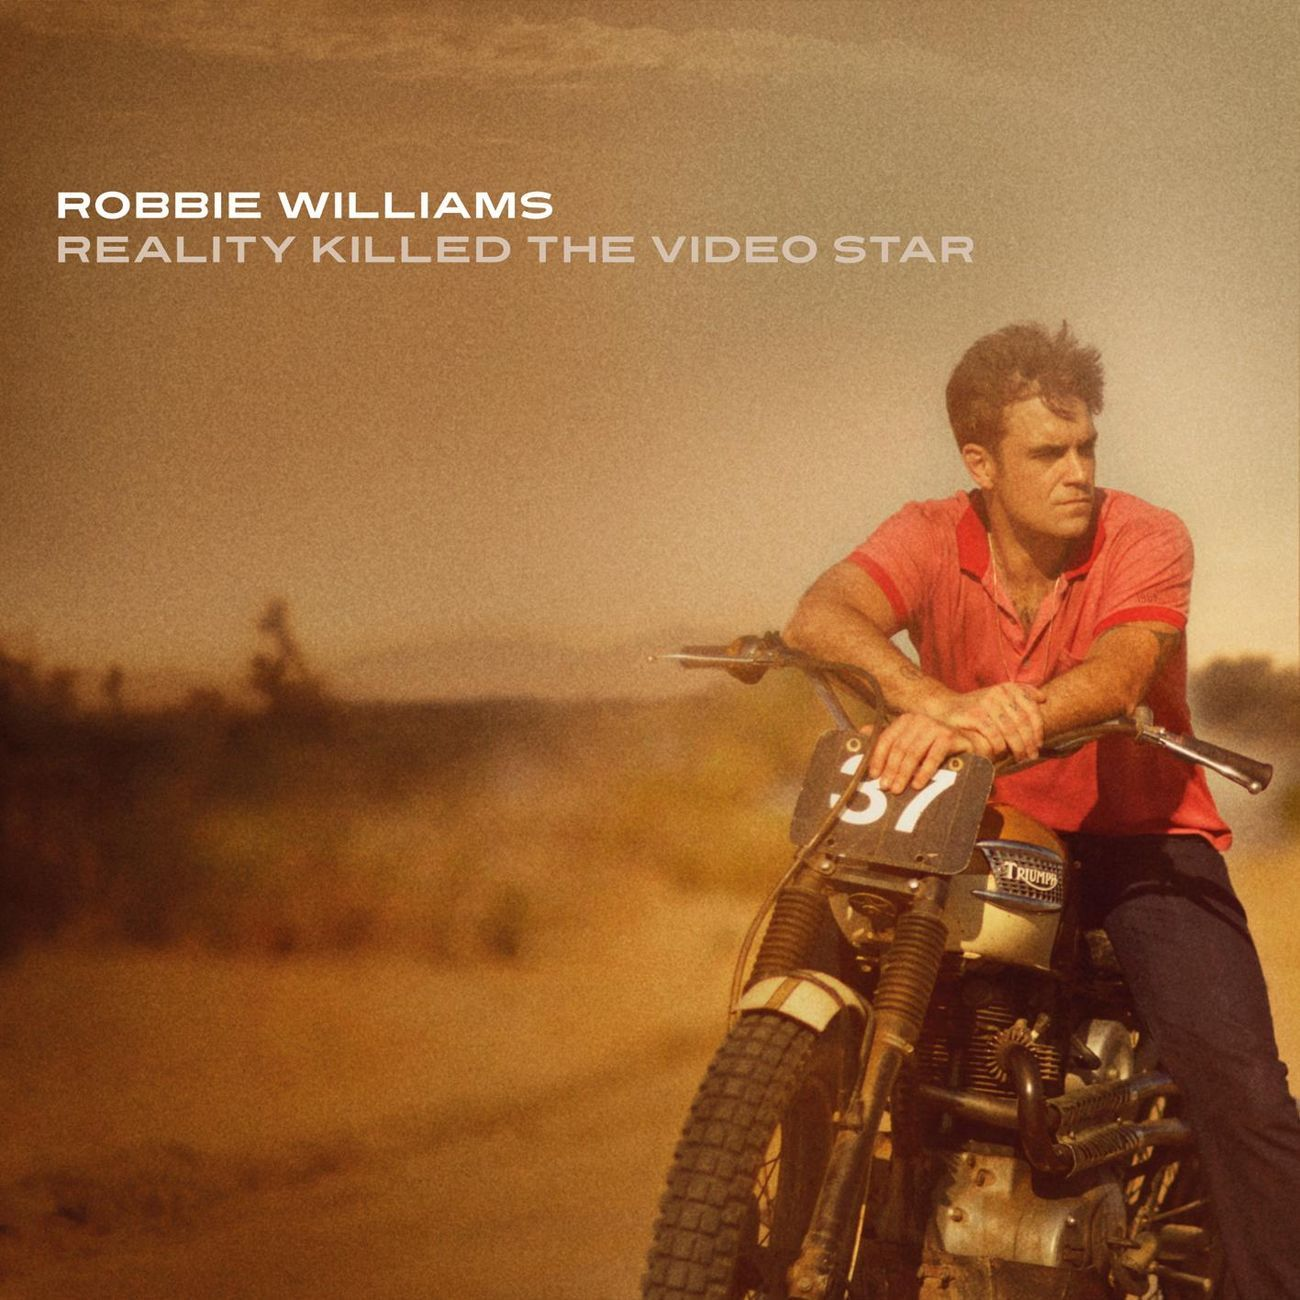 Robbie Williams - Reality Killed The Video Star album cover